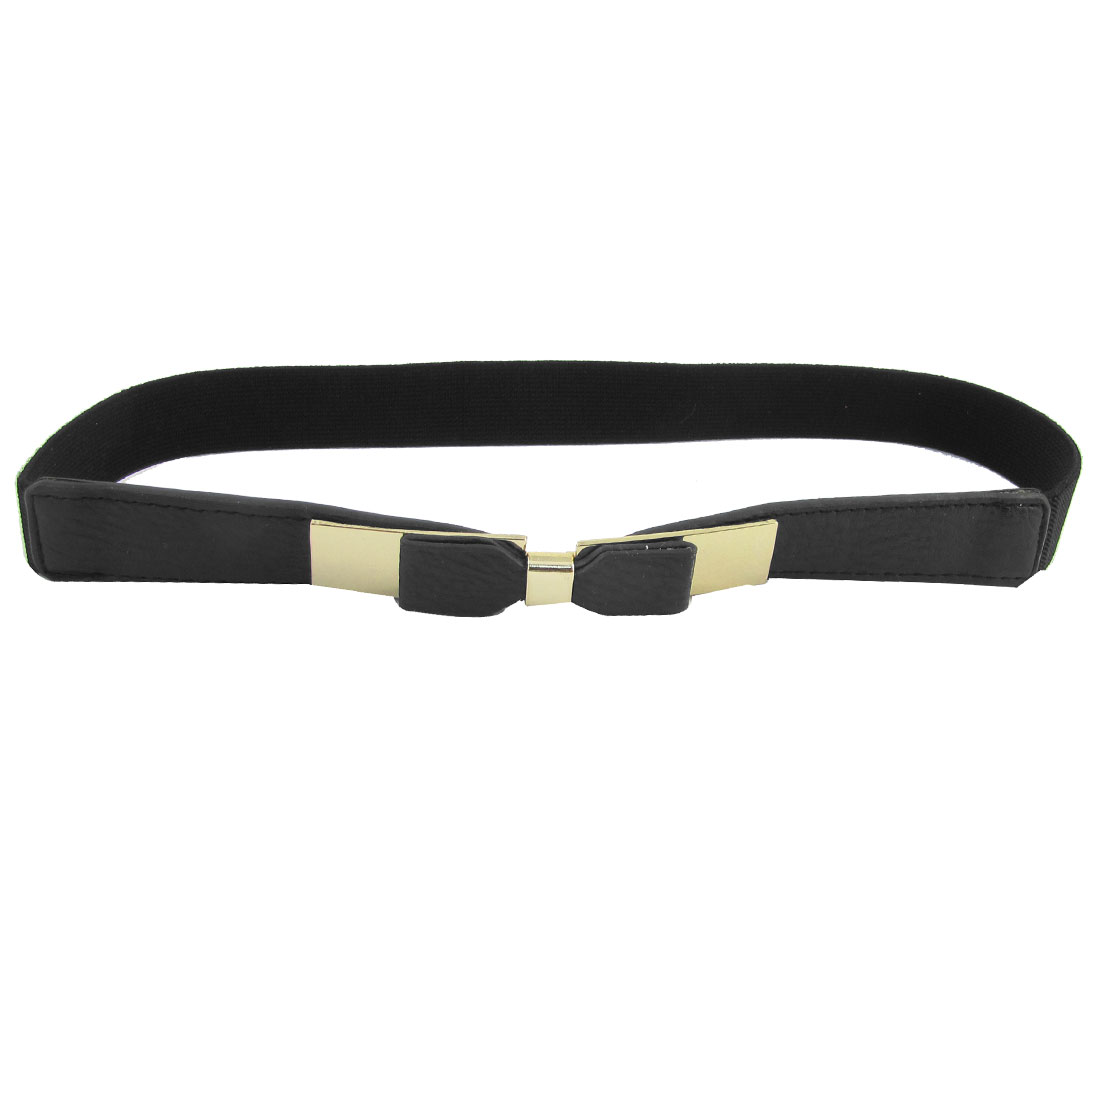 Ladies Metal Rectangle Shape Interlock Buckle Black Textured Spandex Waist Belt